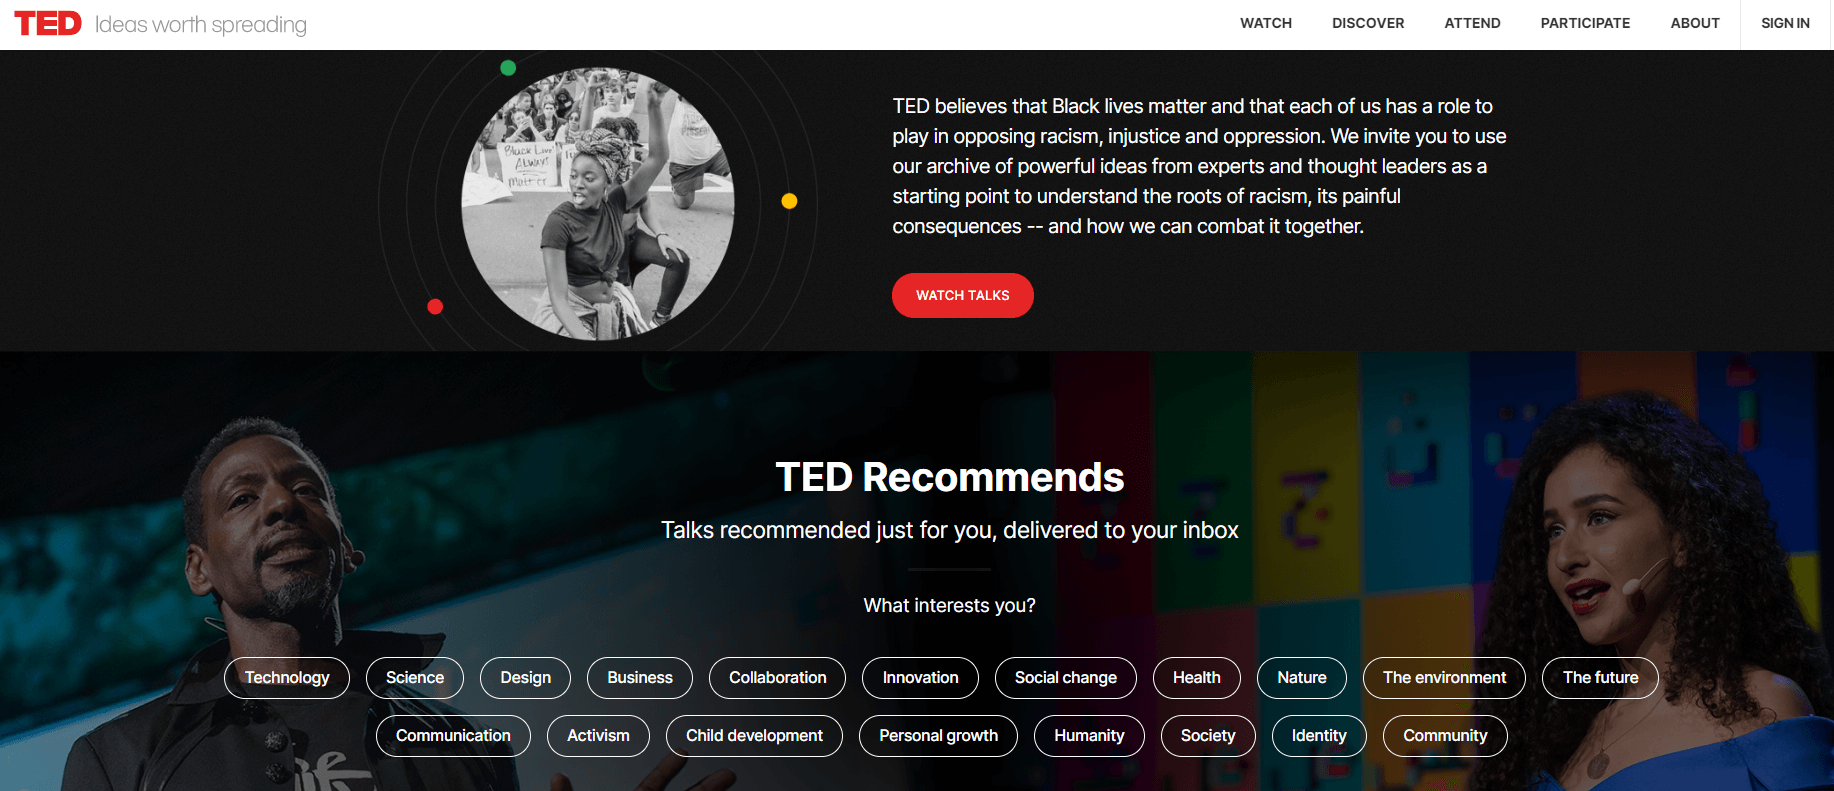 TED - Video Sharing Platform